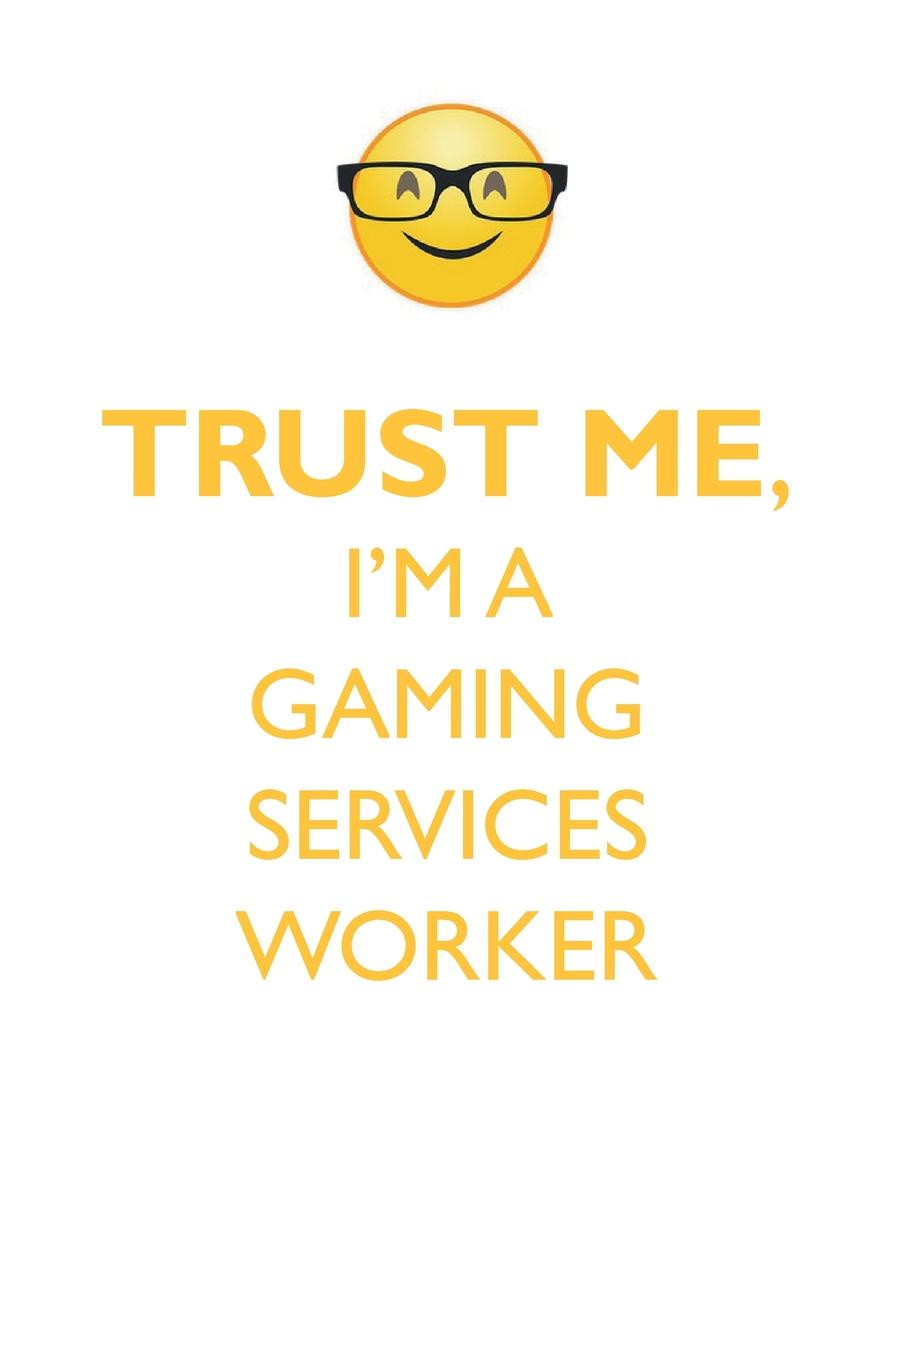 TRUST ME, I'M A GAMING SERVICES WORKER AFFIRMATIONS WORKBOOK Positive Affirmations Workbook. Includes. Mentoring Questions, Guidance, Supporting You.